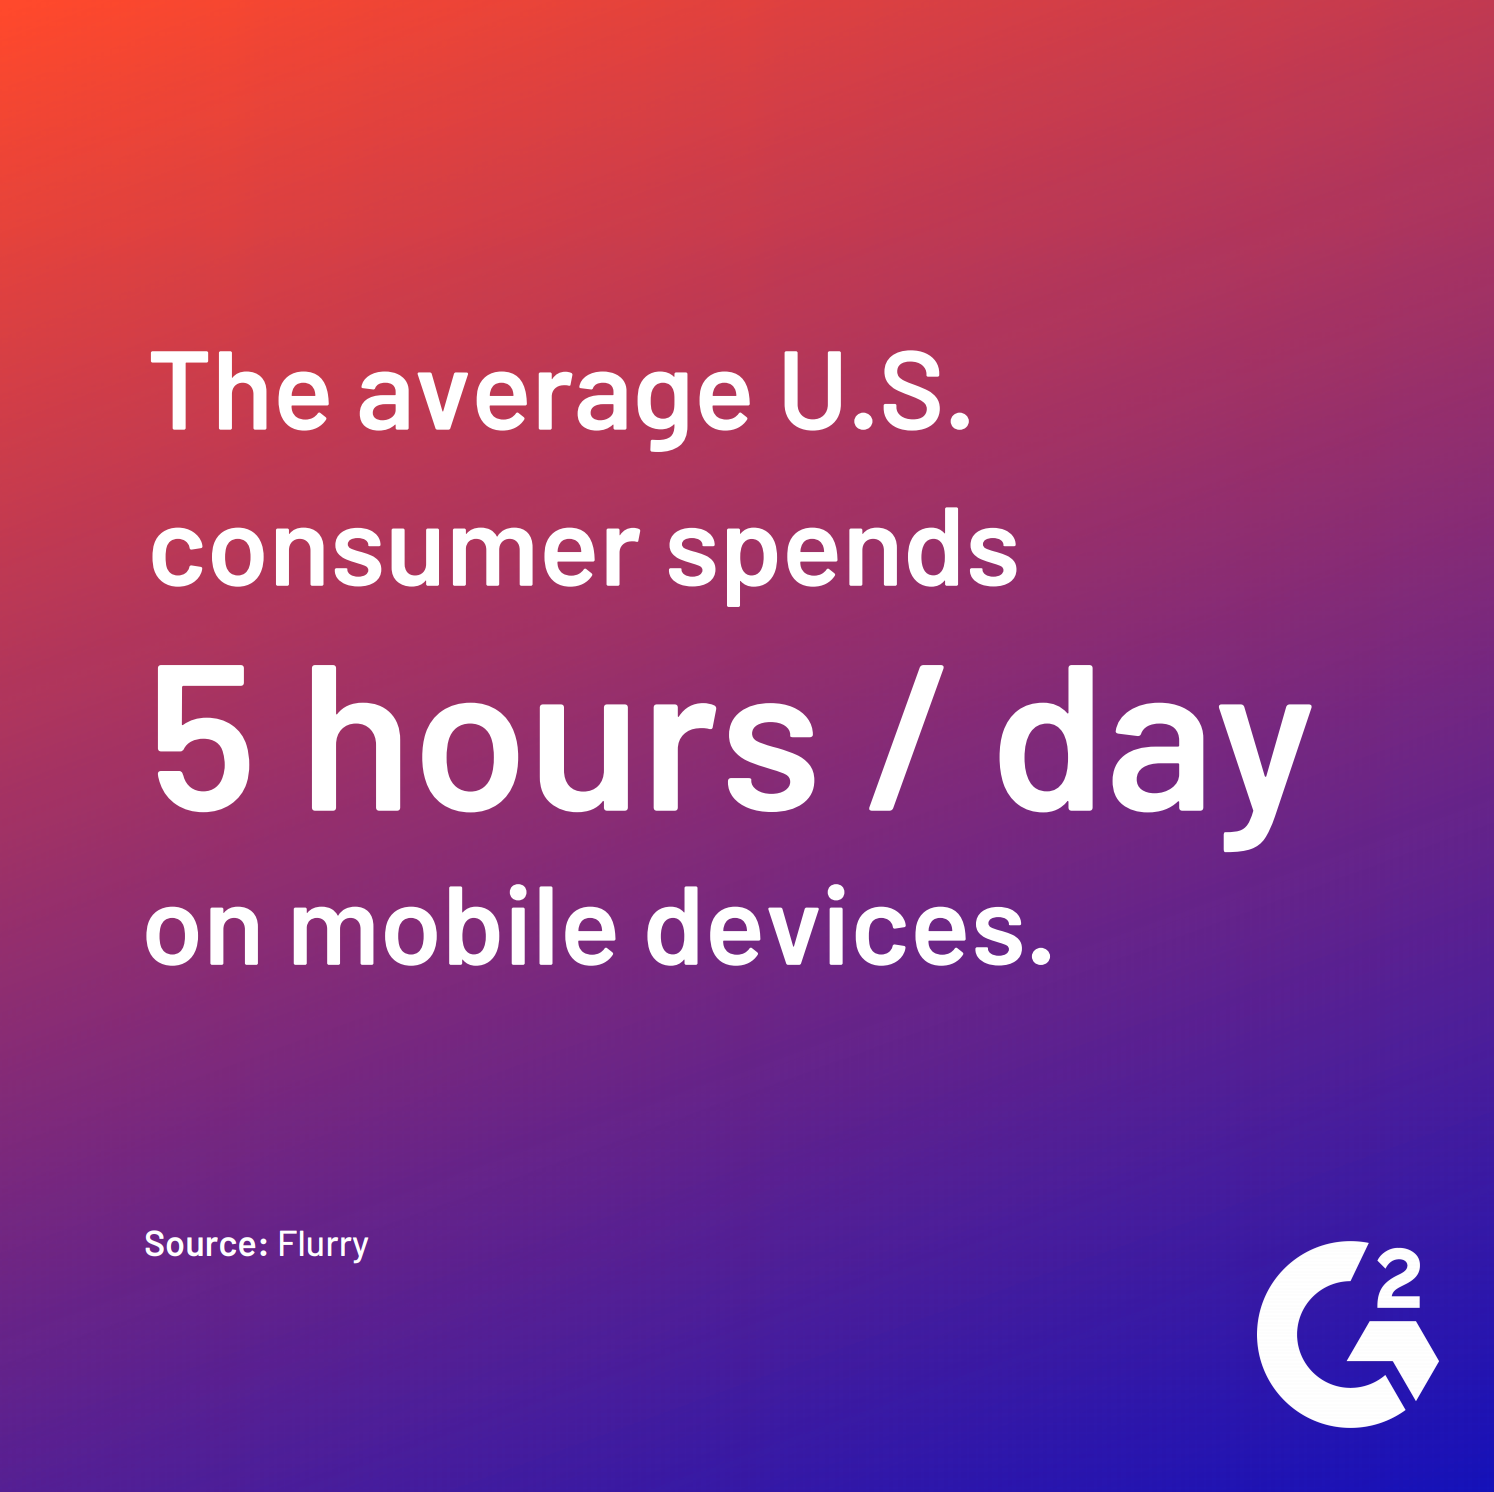 5 hours app usage statistic